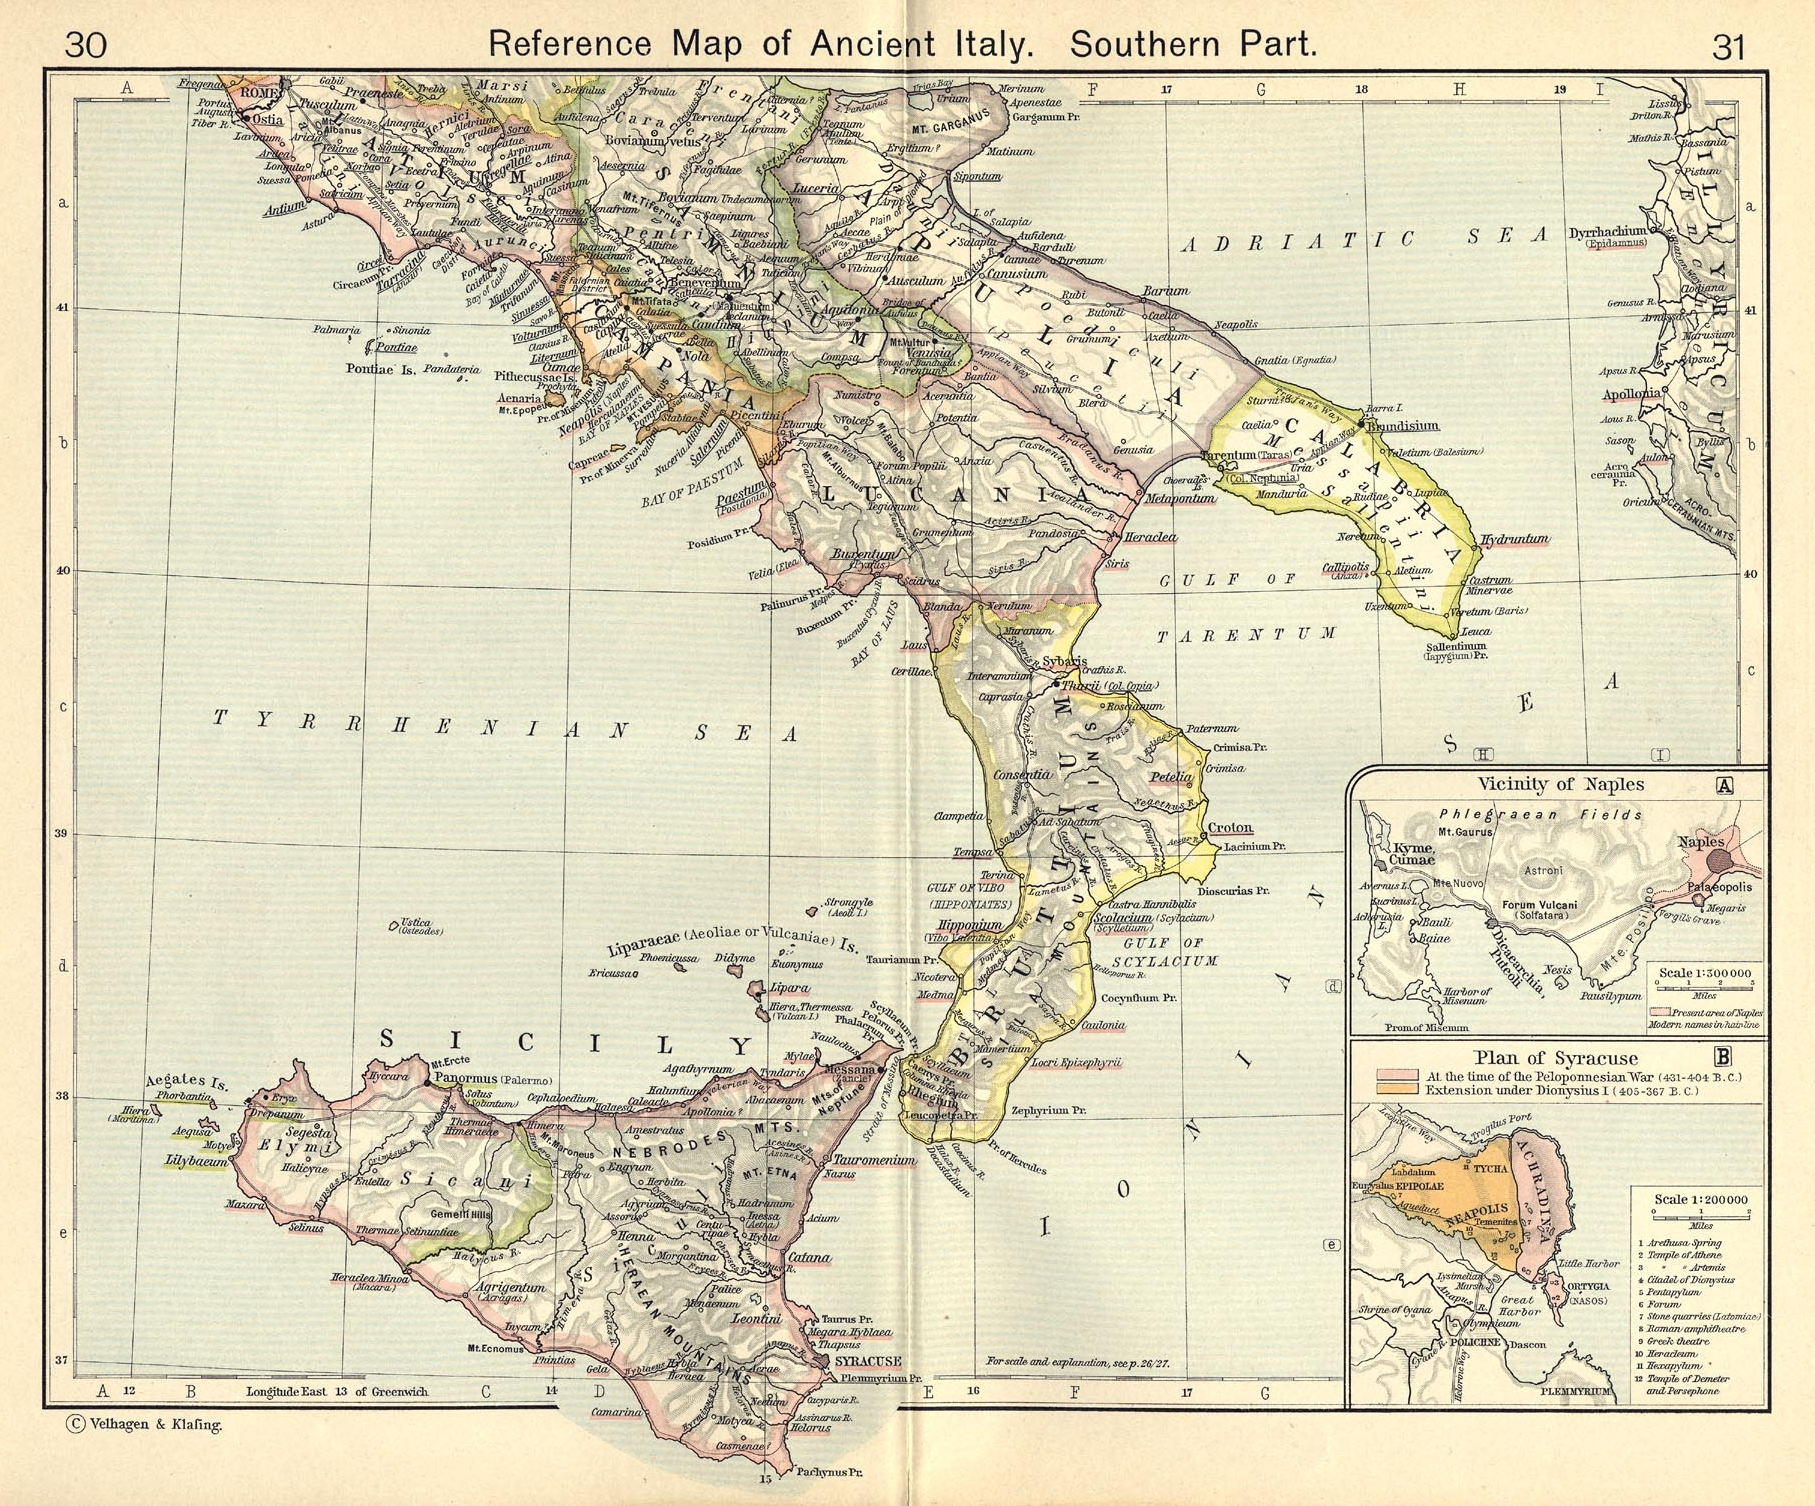 https://upload.wikimedia.org/wikipedia/commons/1/1b/Map_of_Ancient_Italy%2C_Southern_Part.jpg